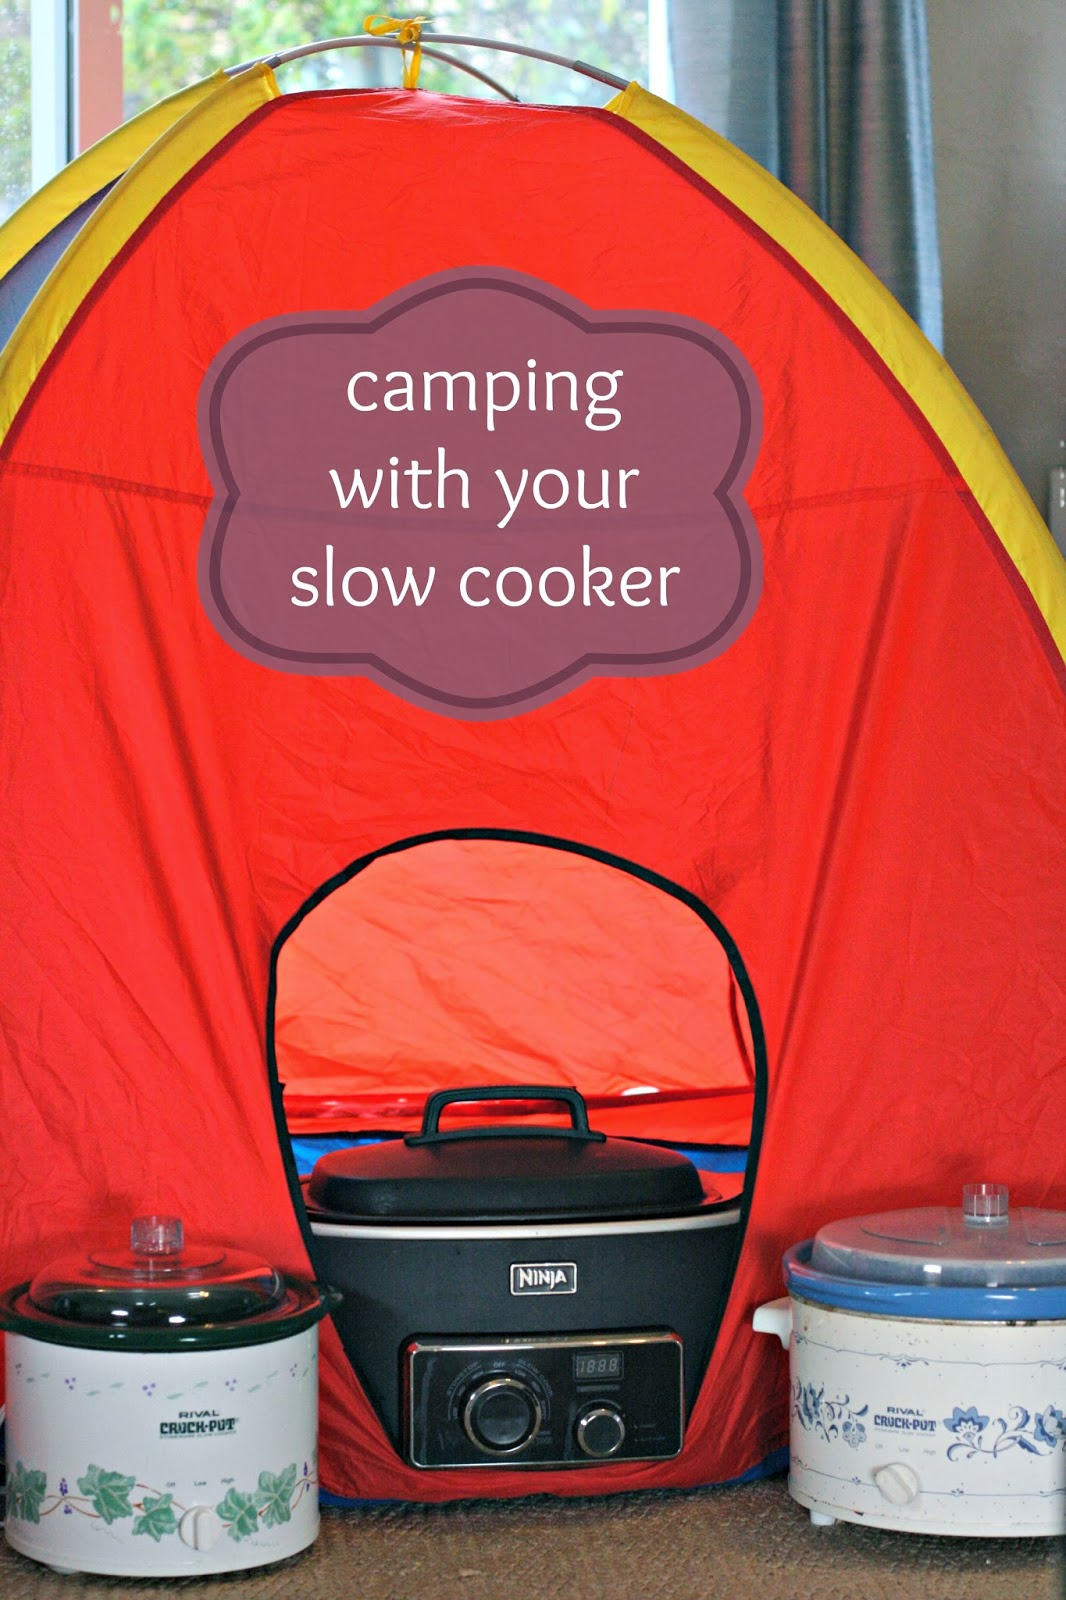 Yes, You Should Totally Take Your Slow Cooker On Your Next Camping Trip!